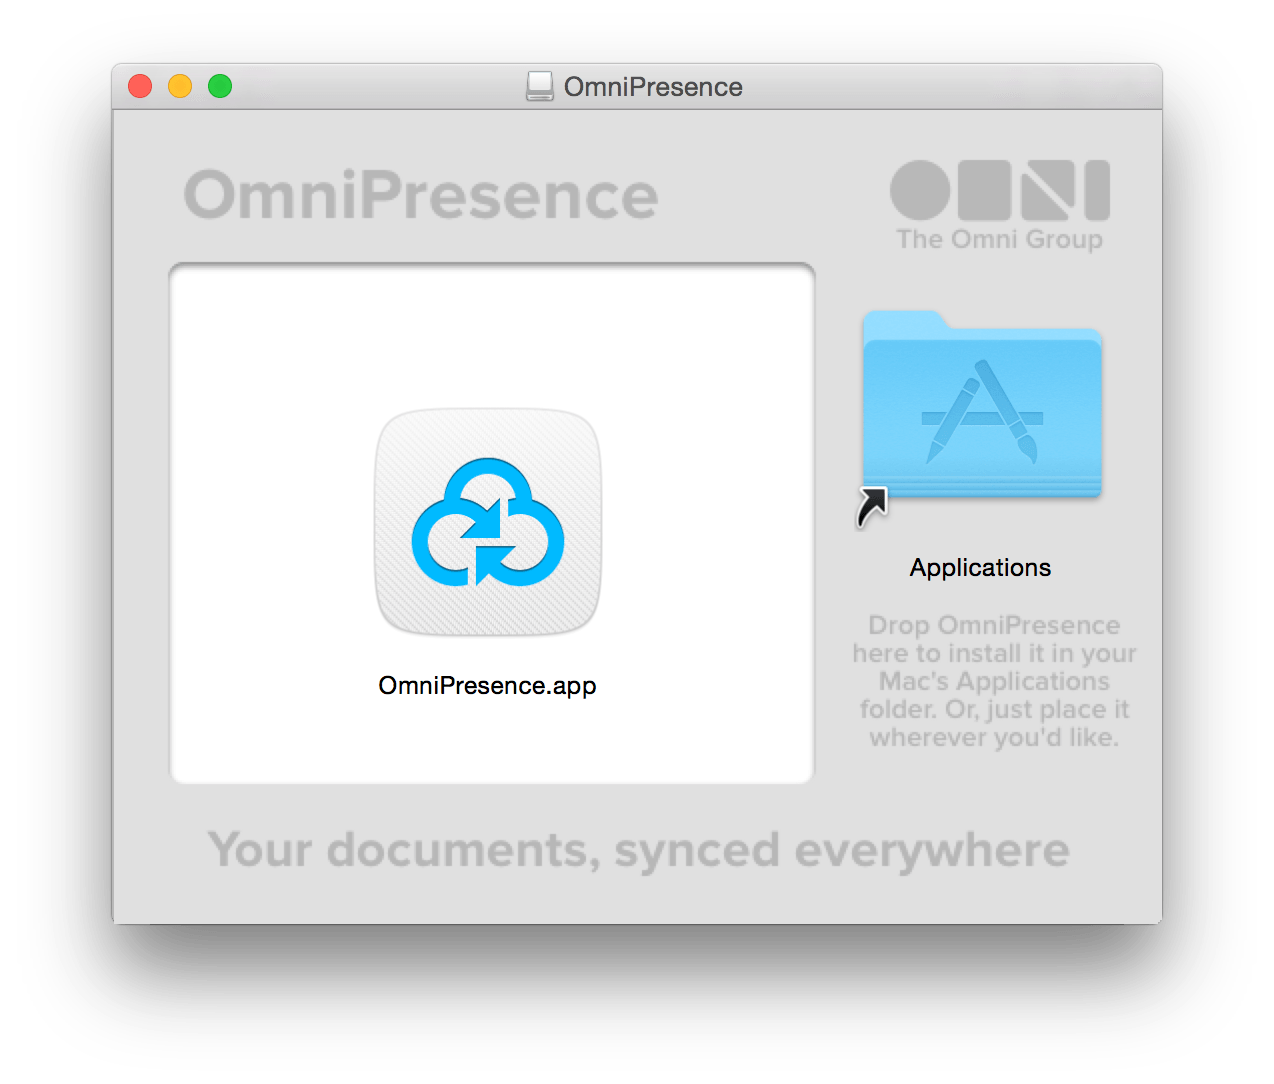 Drag the OmniPresence.app icon over to the Applications folder to install it on your Mac